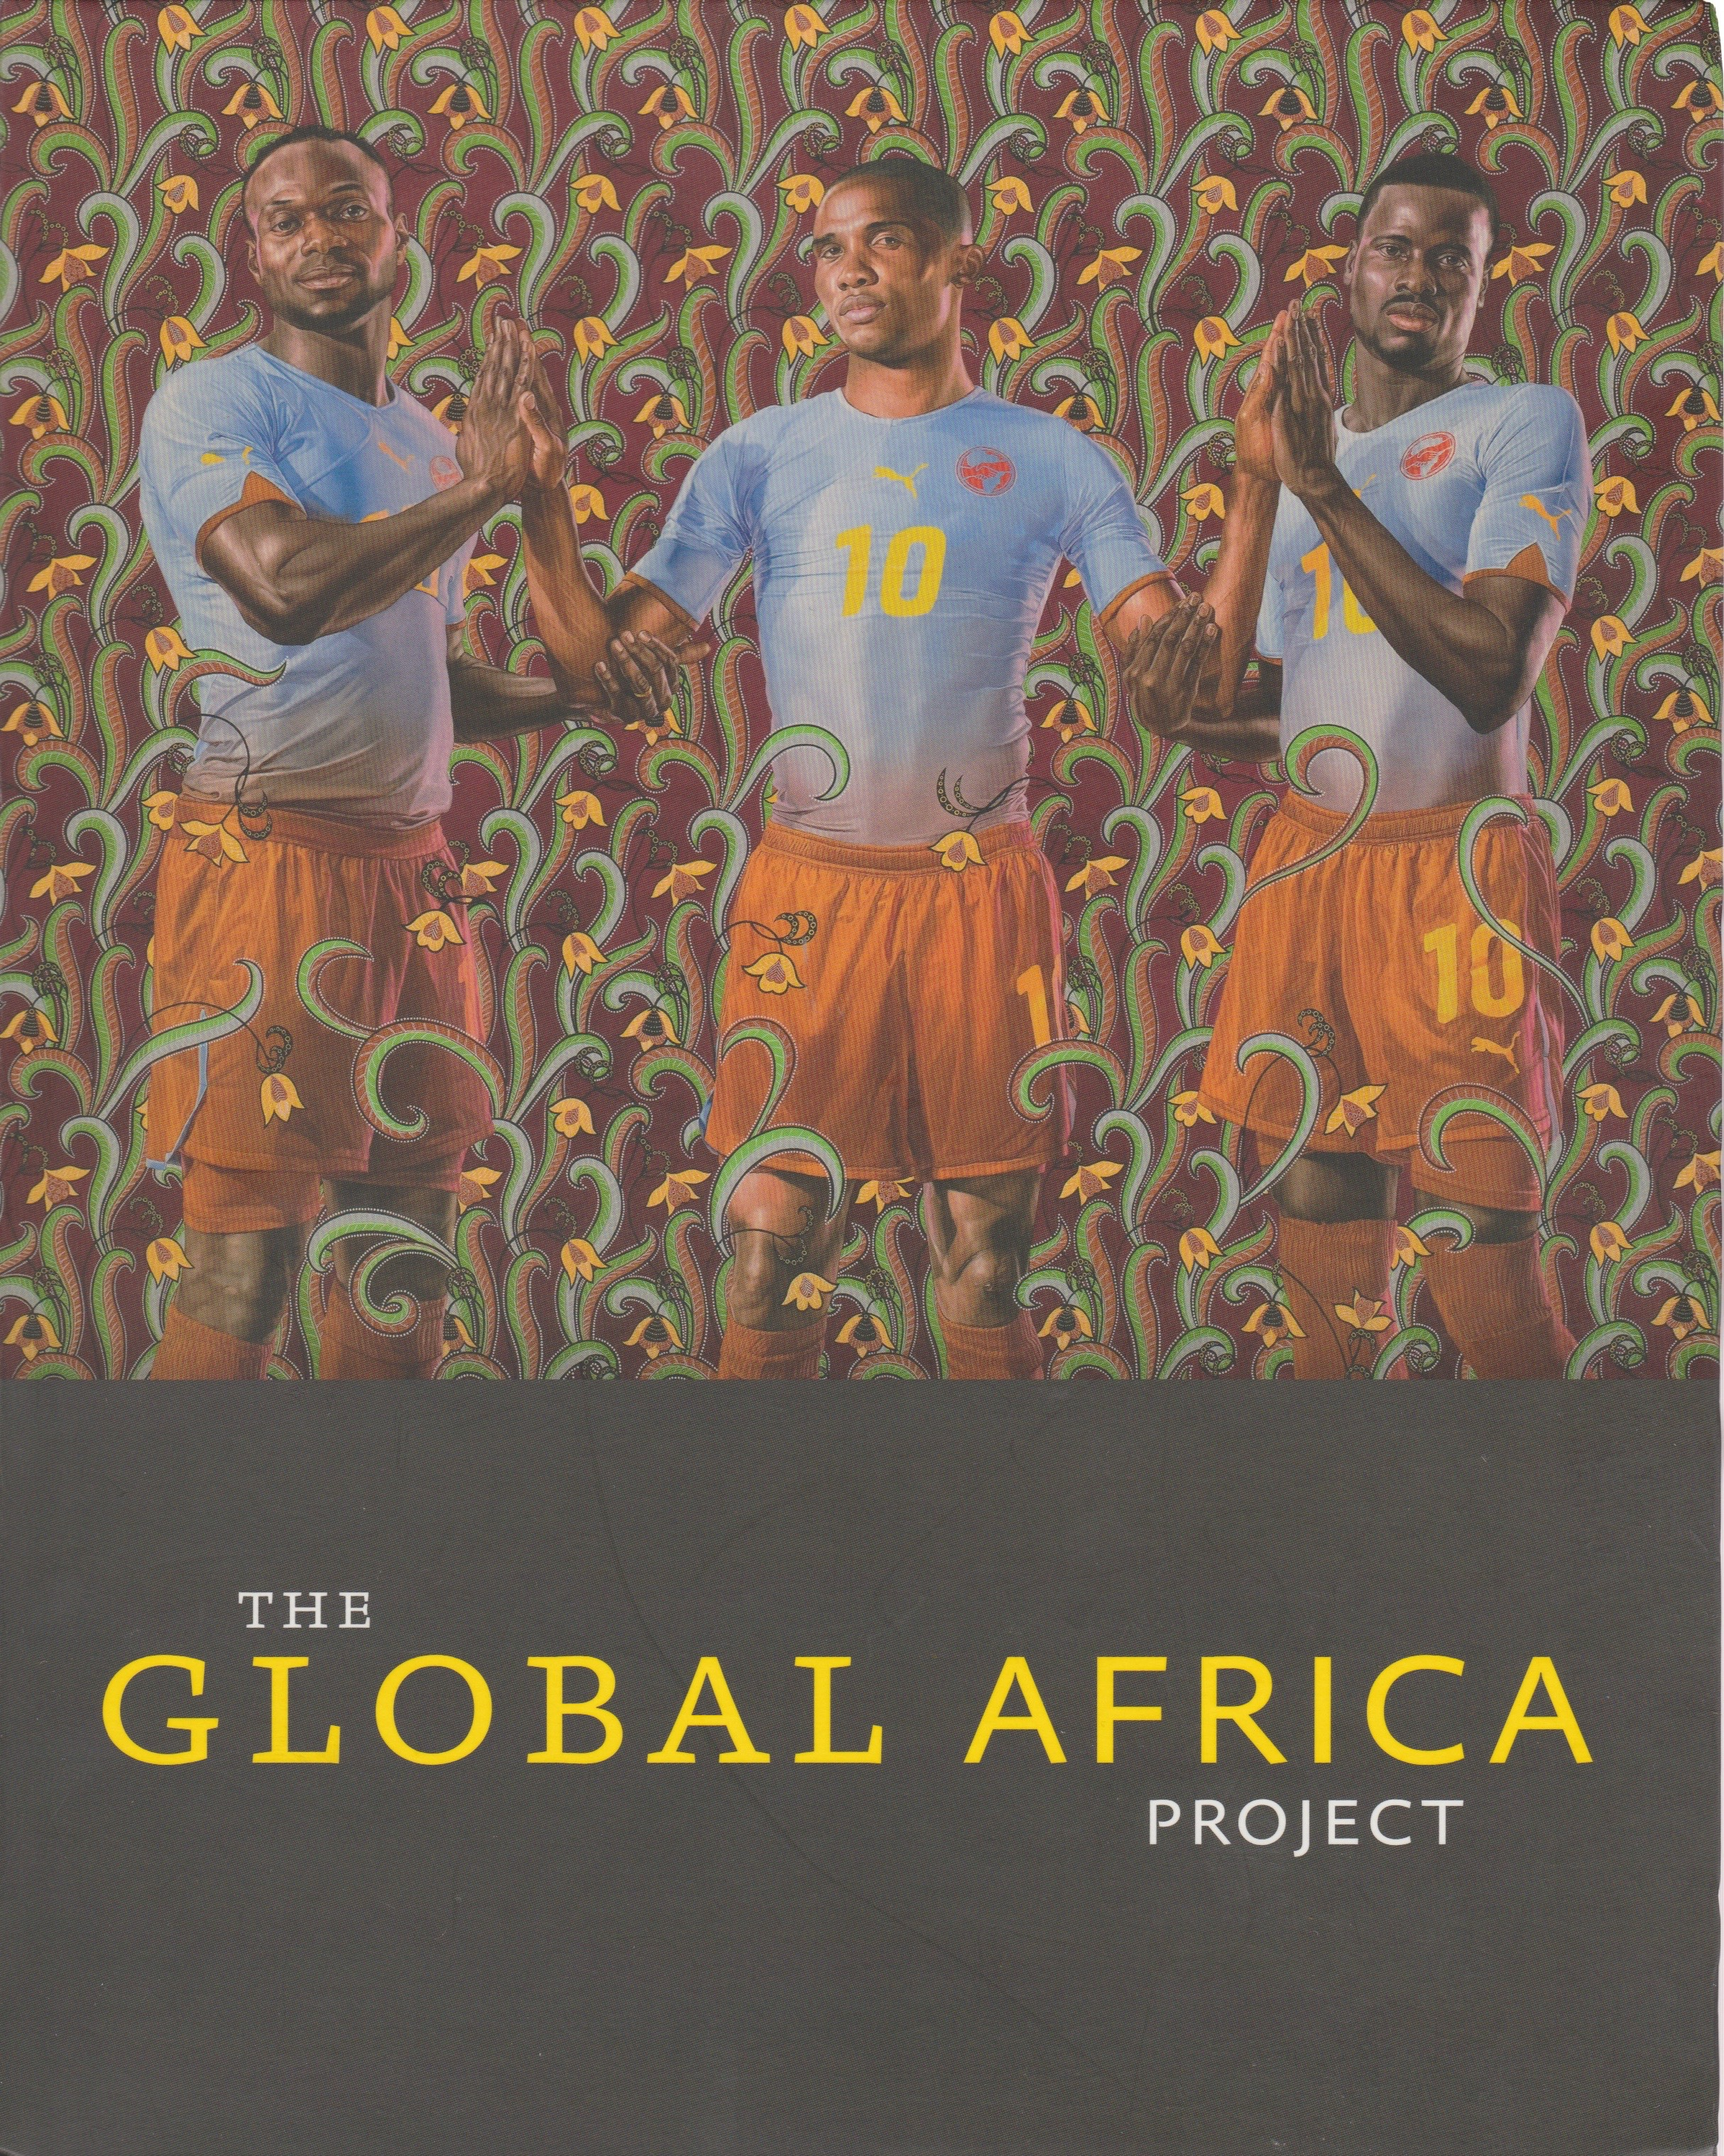 THE GLOBAL AFRICA PROJECT.jpg